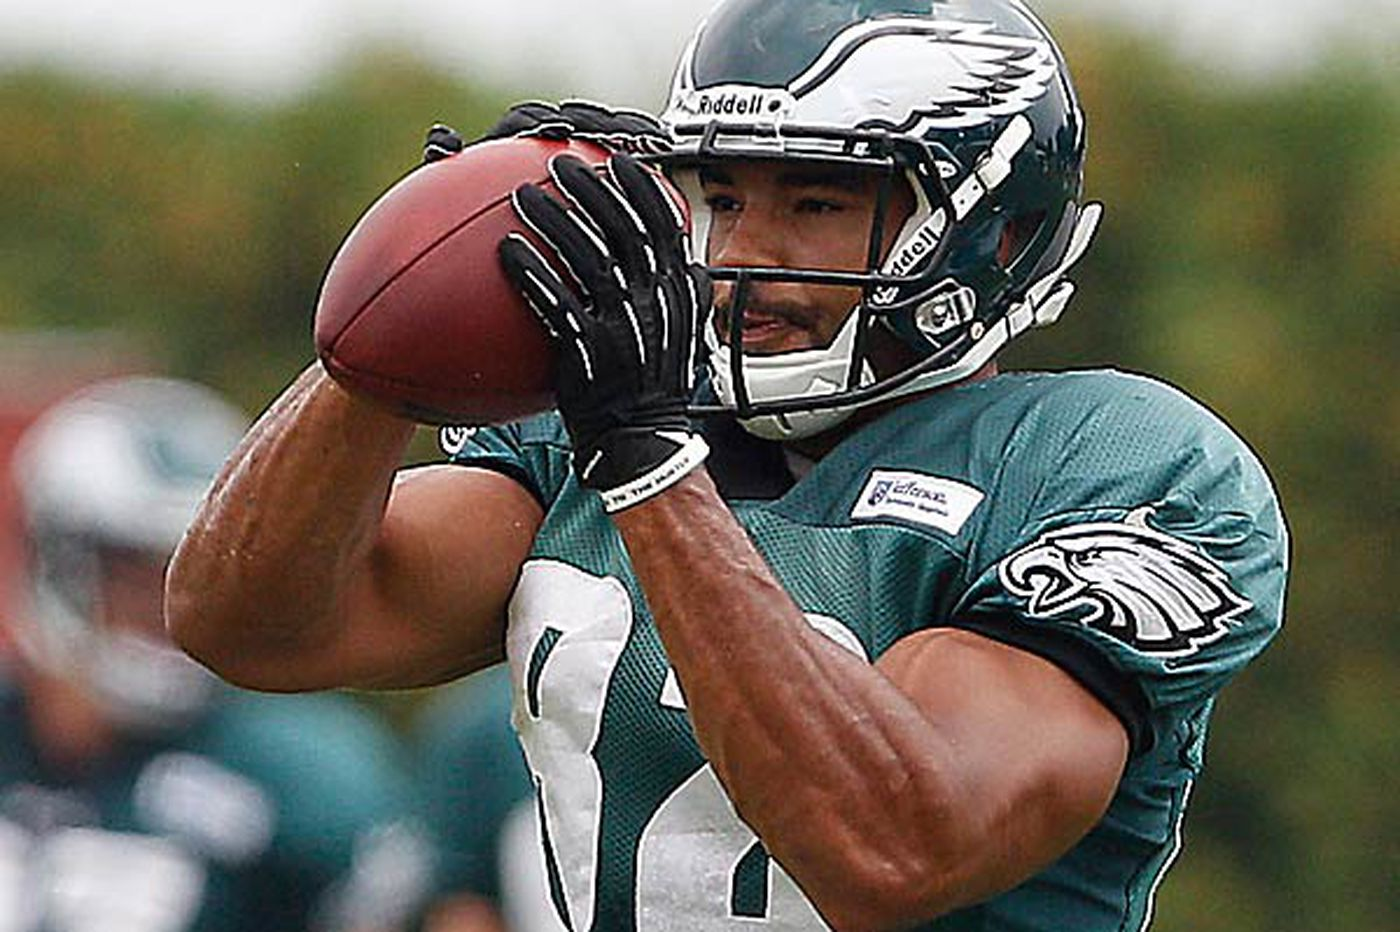 Harbor awaits his fate with Eagles